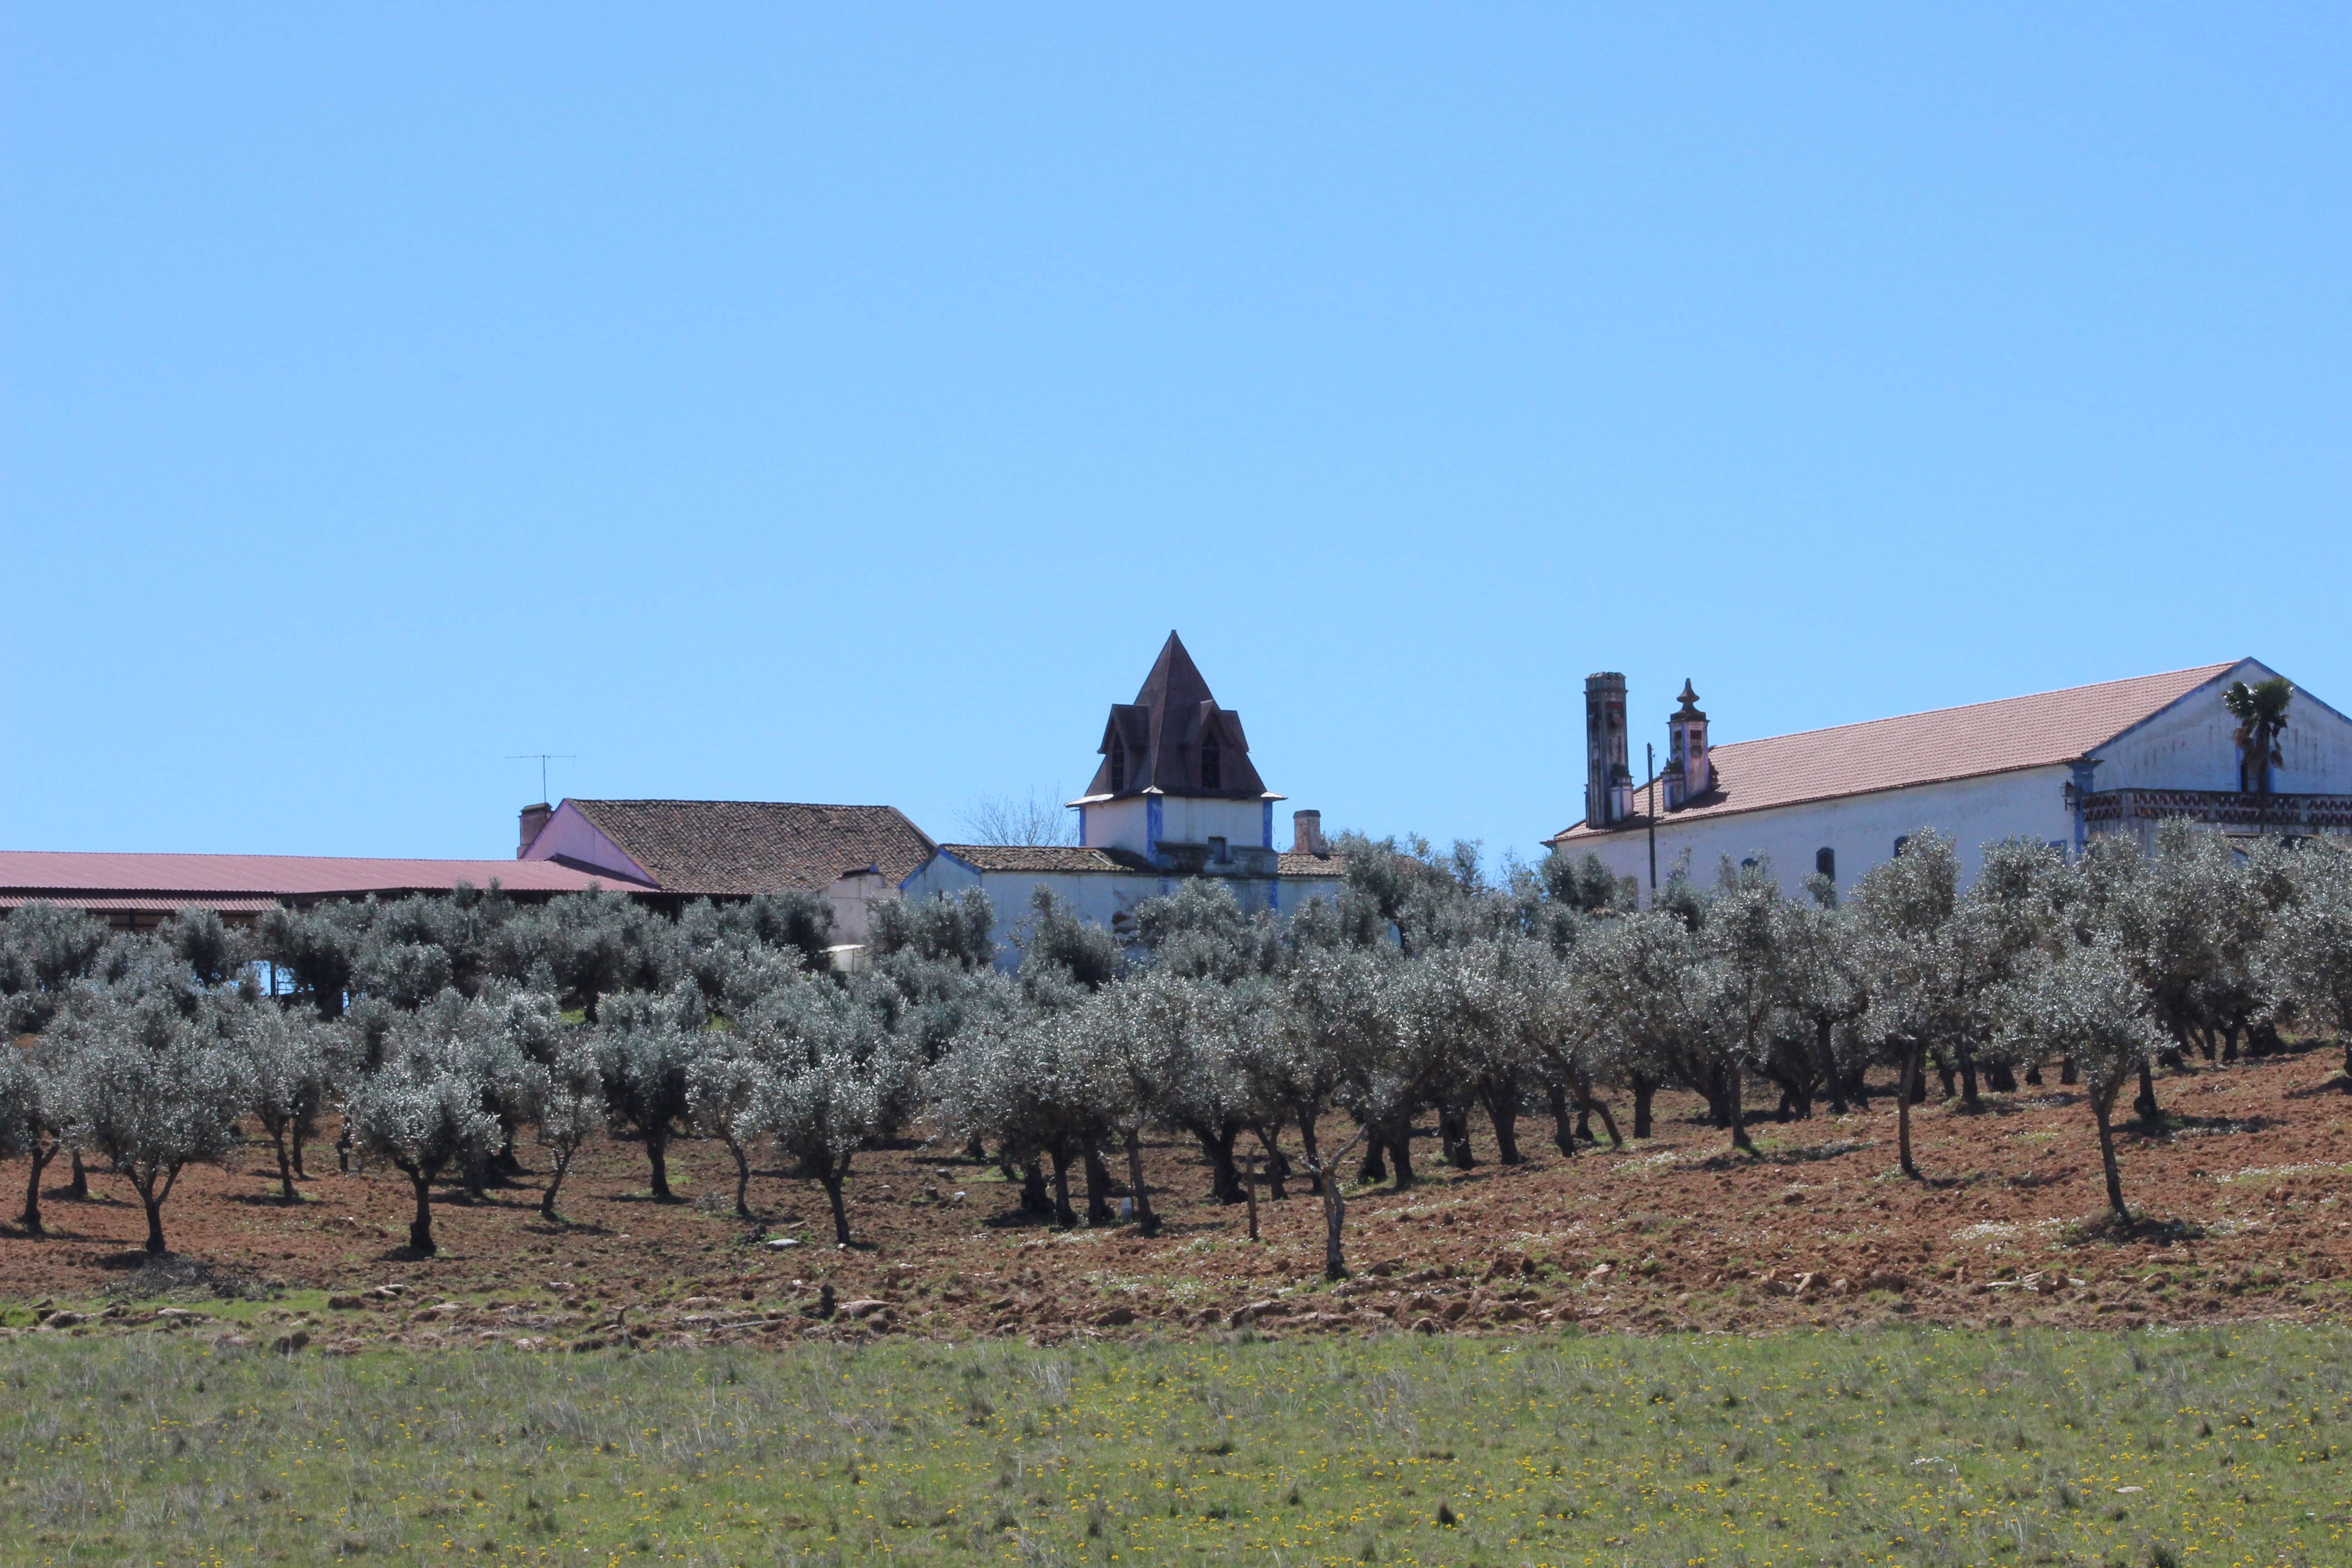 Farm, Olive Grove, Cork Oaks, Cattle & Manor House